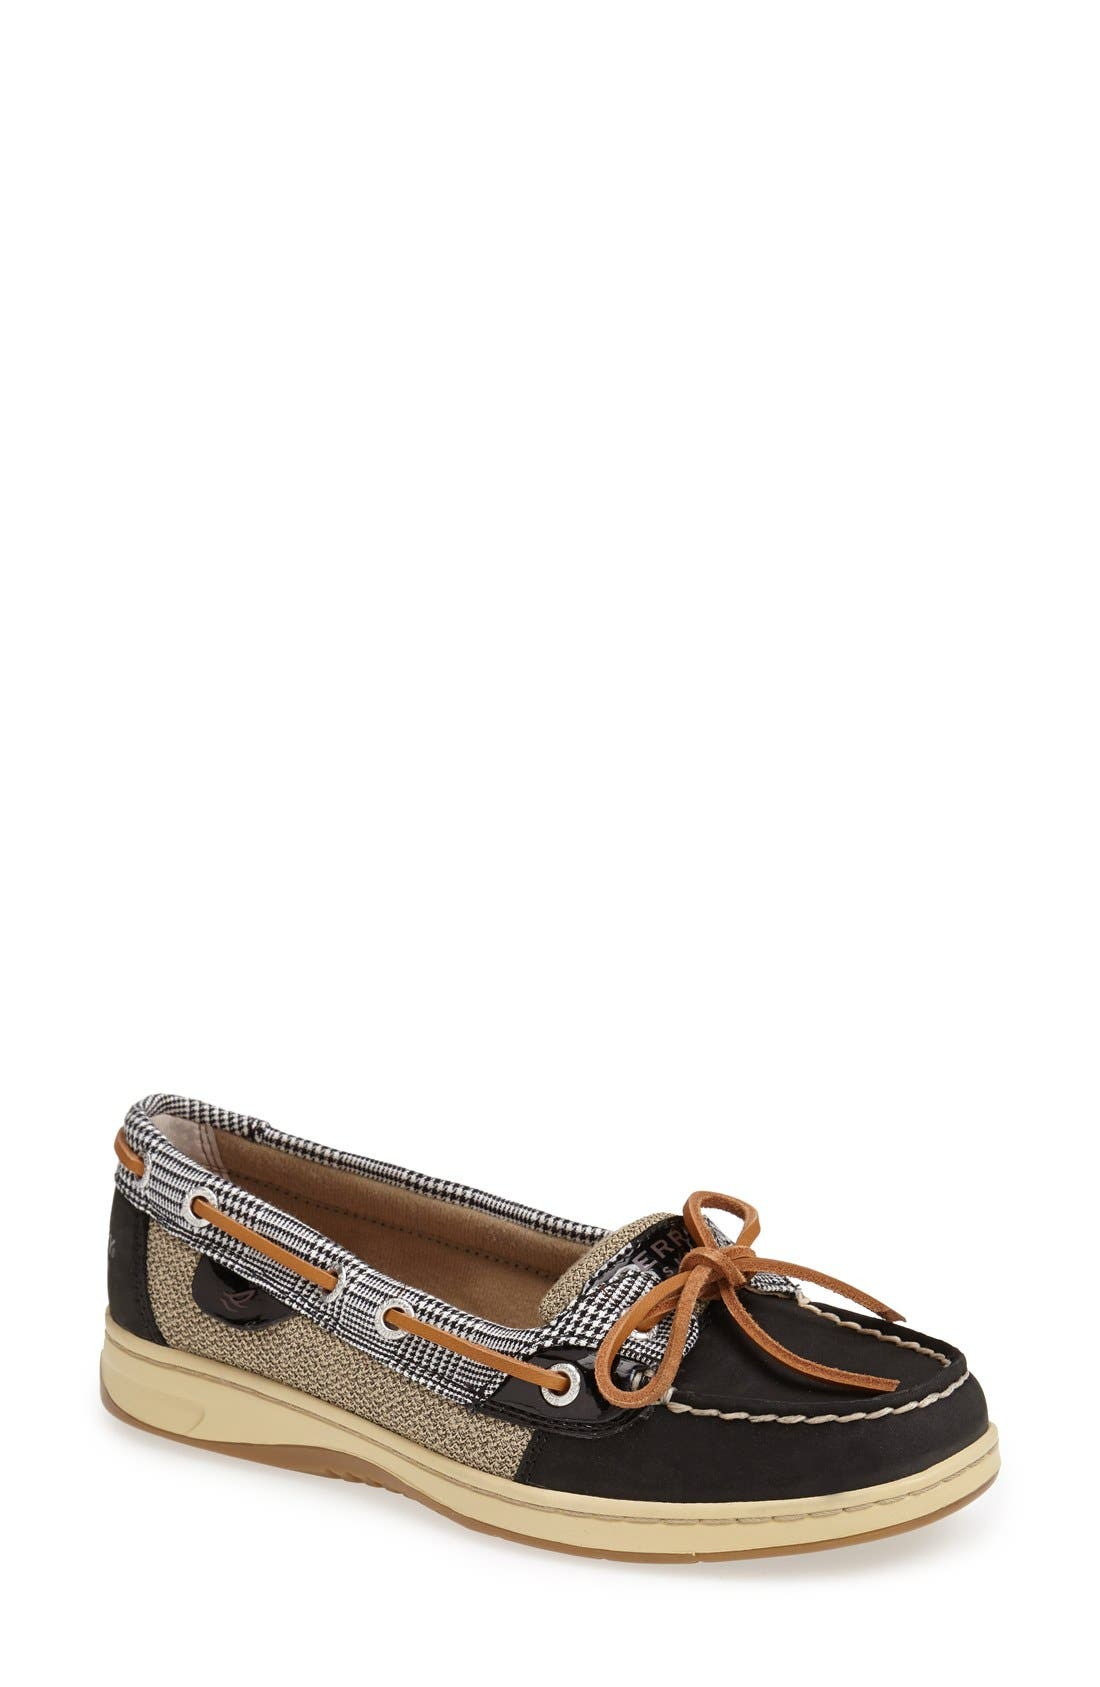 Top-Sider<sup>®</sup> 'Angelfish' Boat Shoe, Main, color, 001